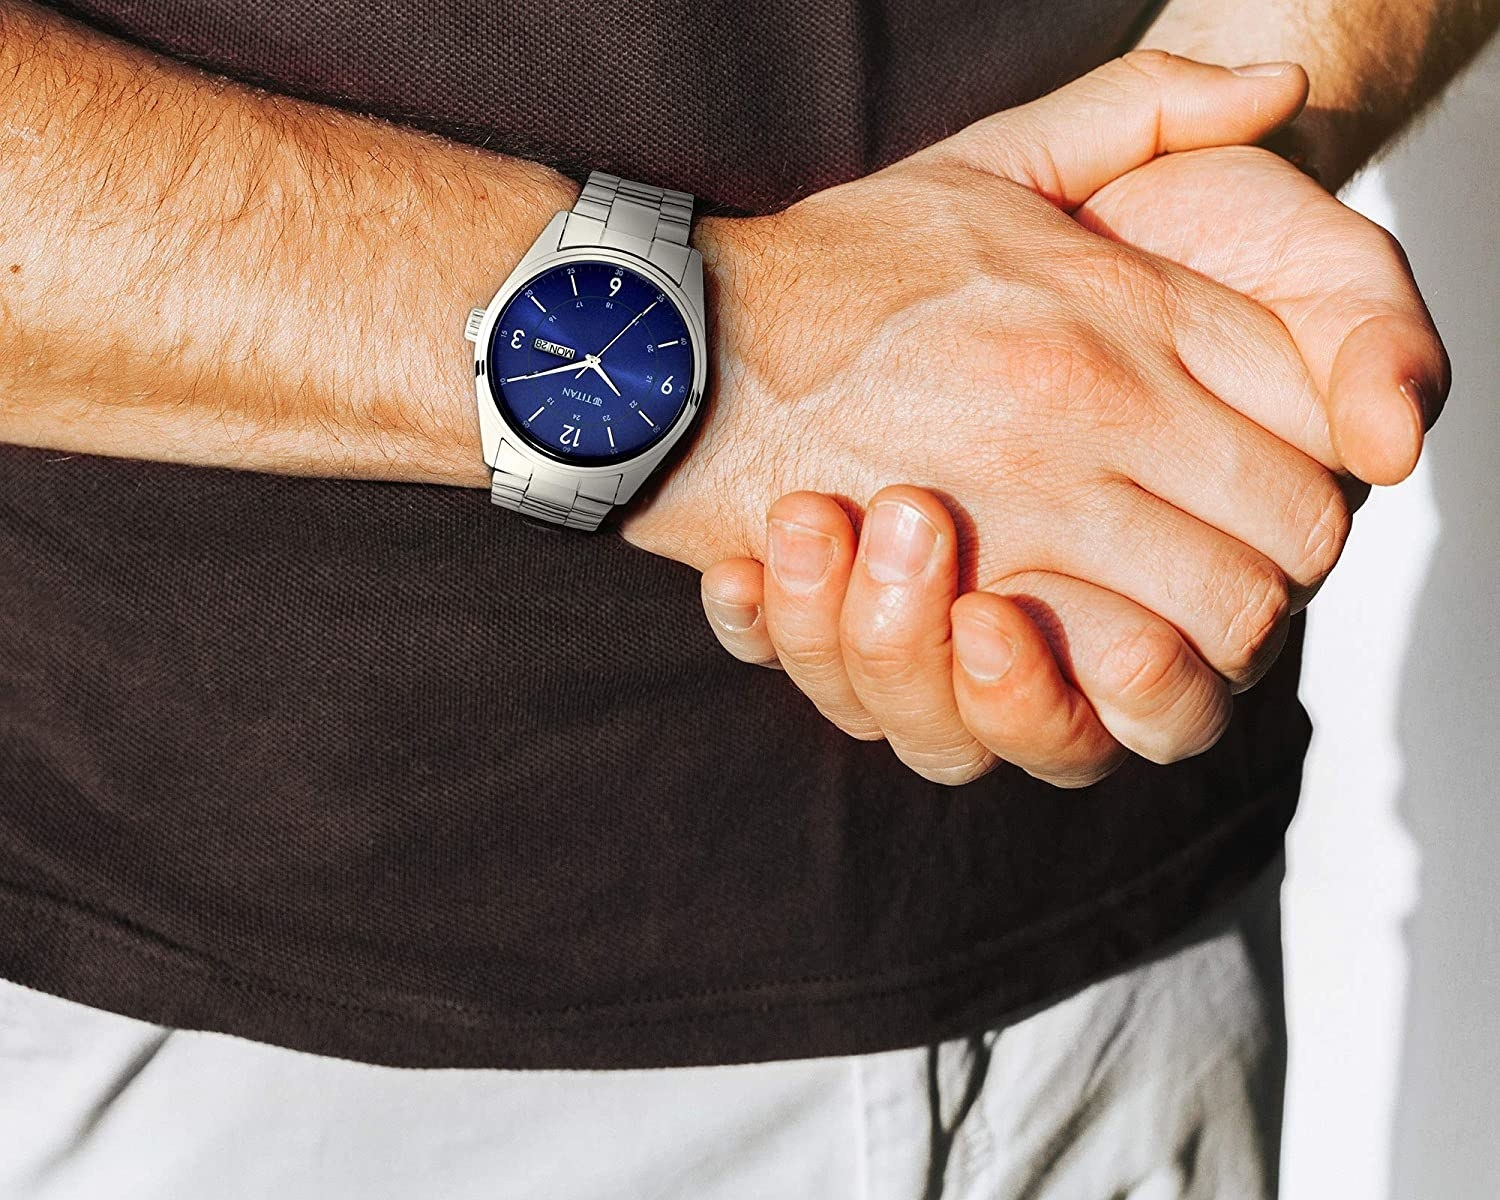 A man wearing a blue and silver watch